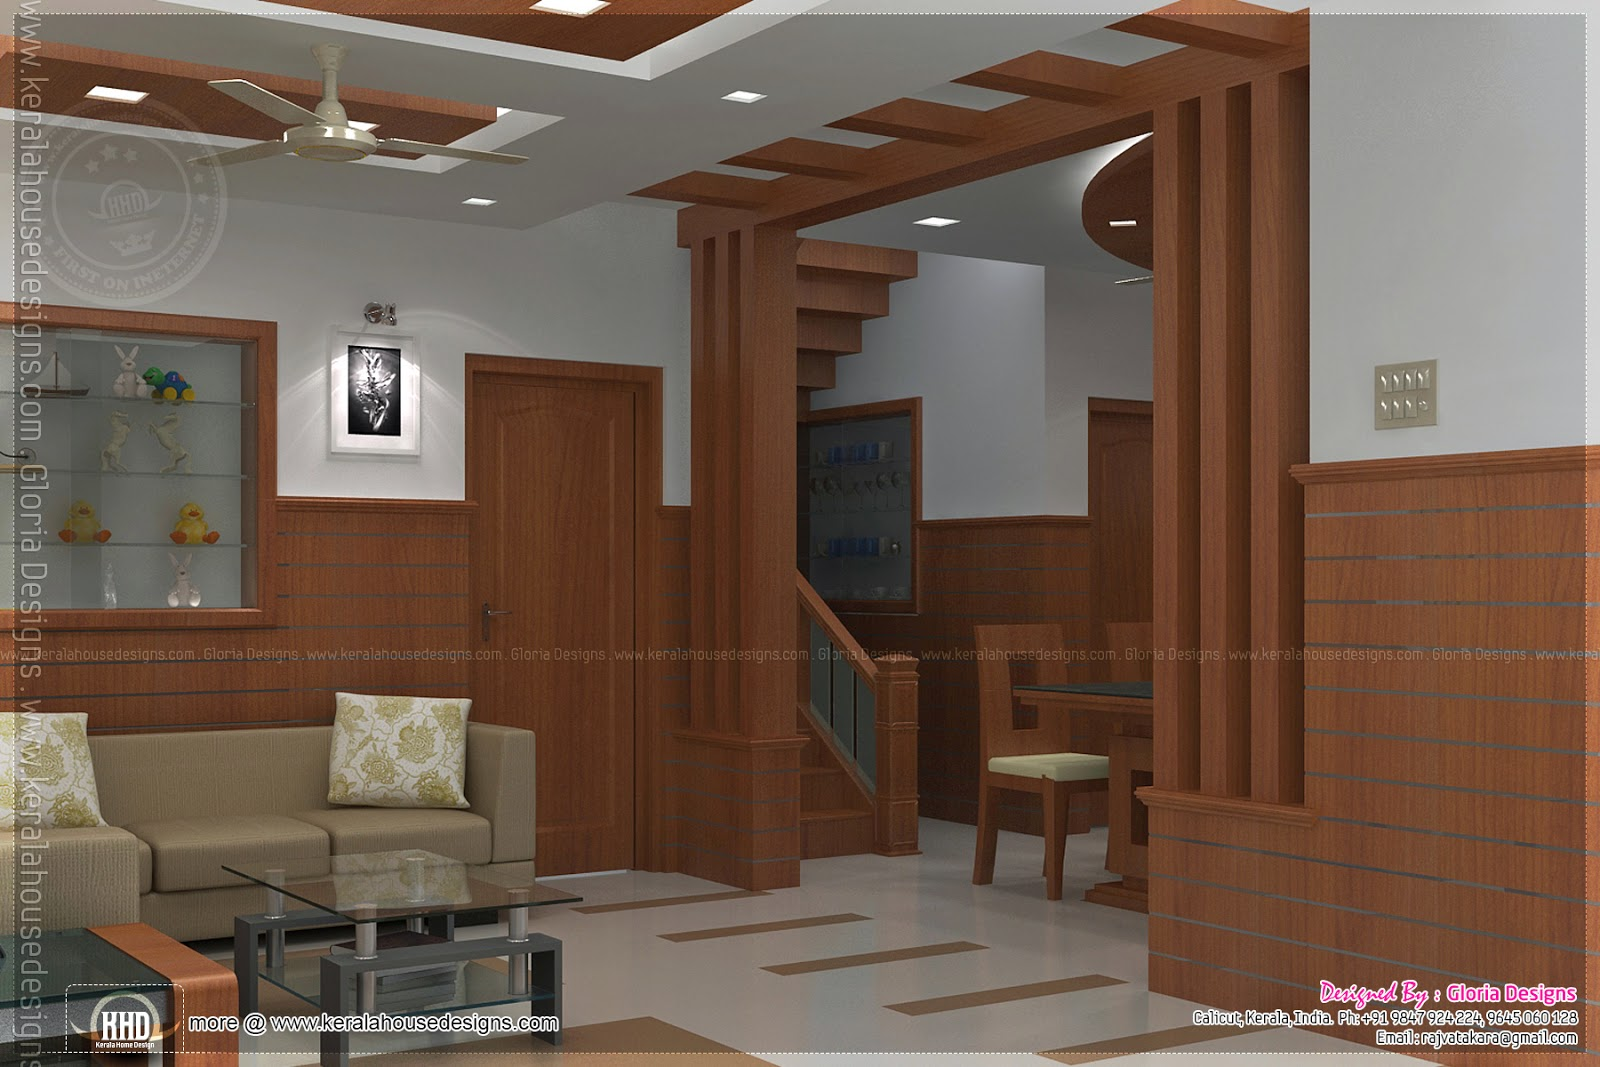 Interior Design Ideas For Small Indian Homes Home Interior Designs By Gloria Designs Calicut Kerala